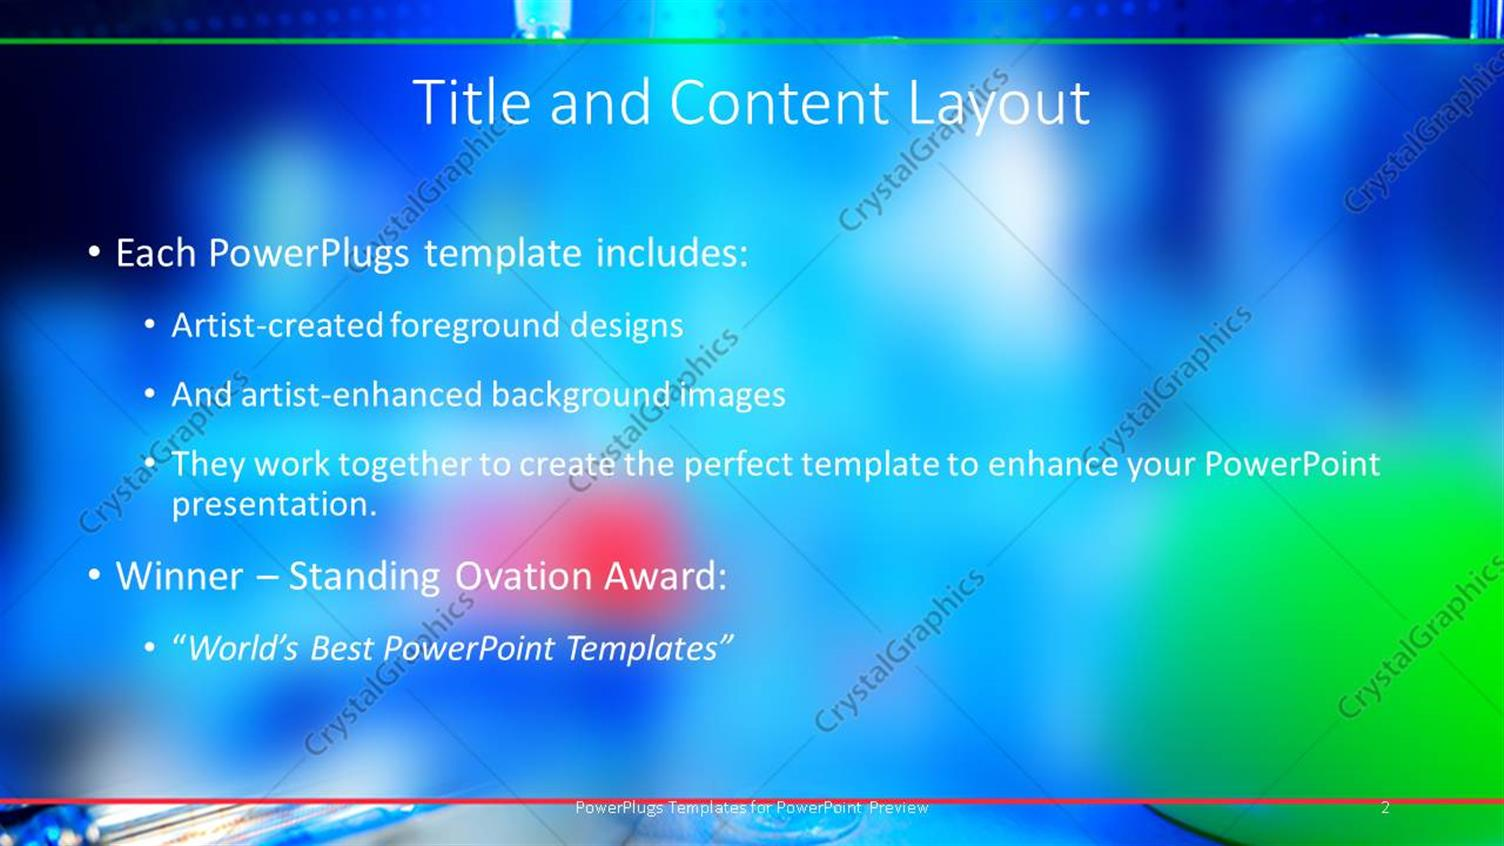 Powerpoint template research laboratory with medical science powerpoint products templates secure toneelgroepblik Image collections